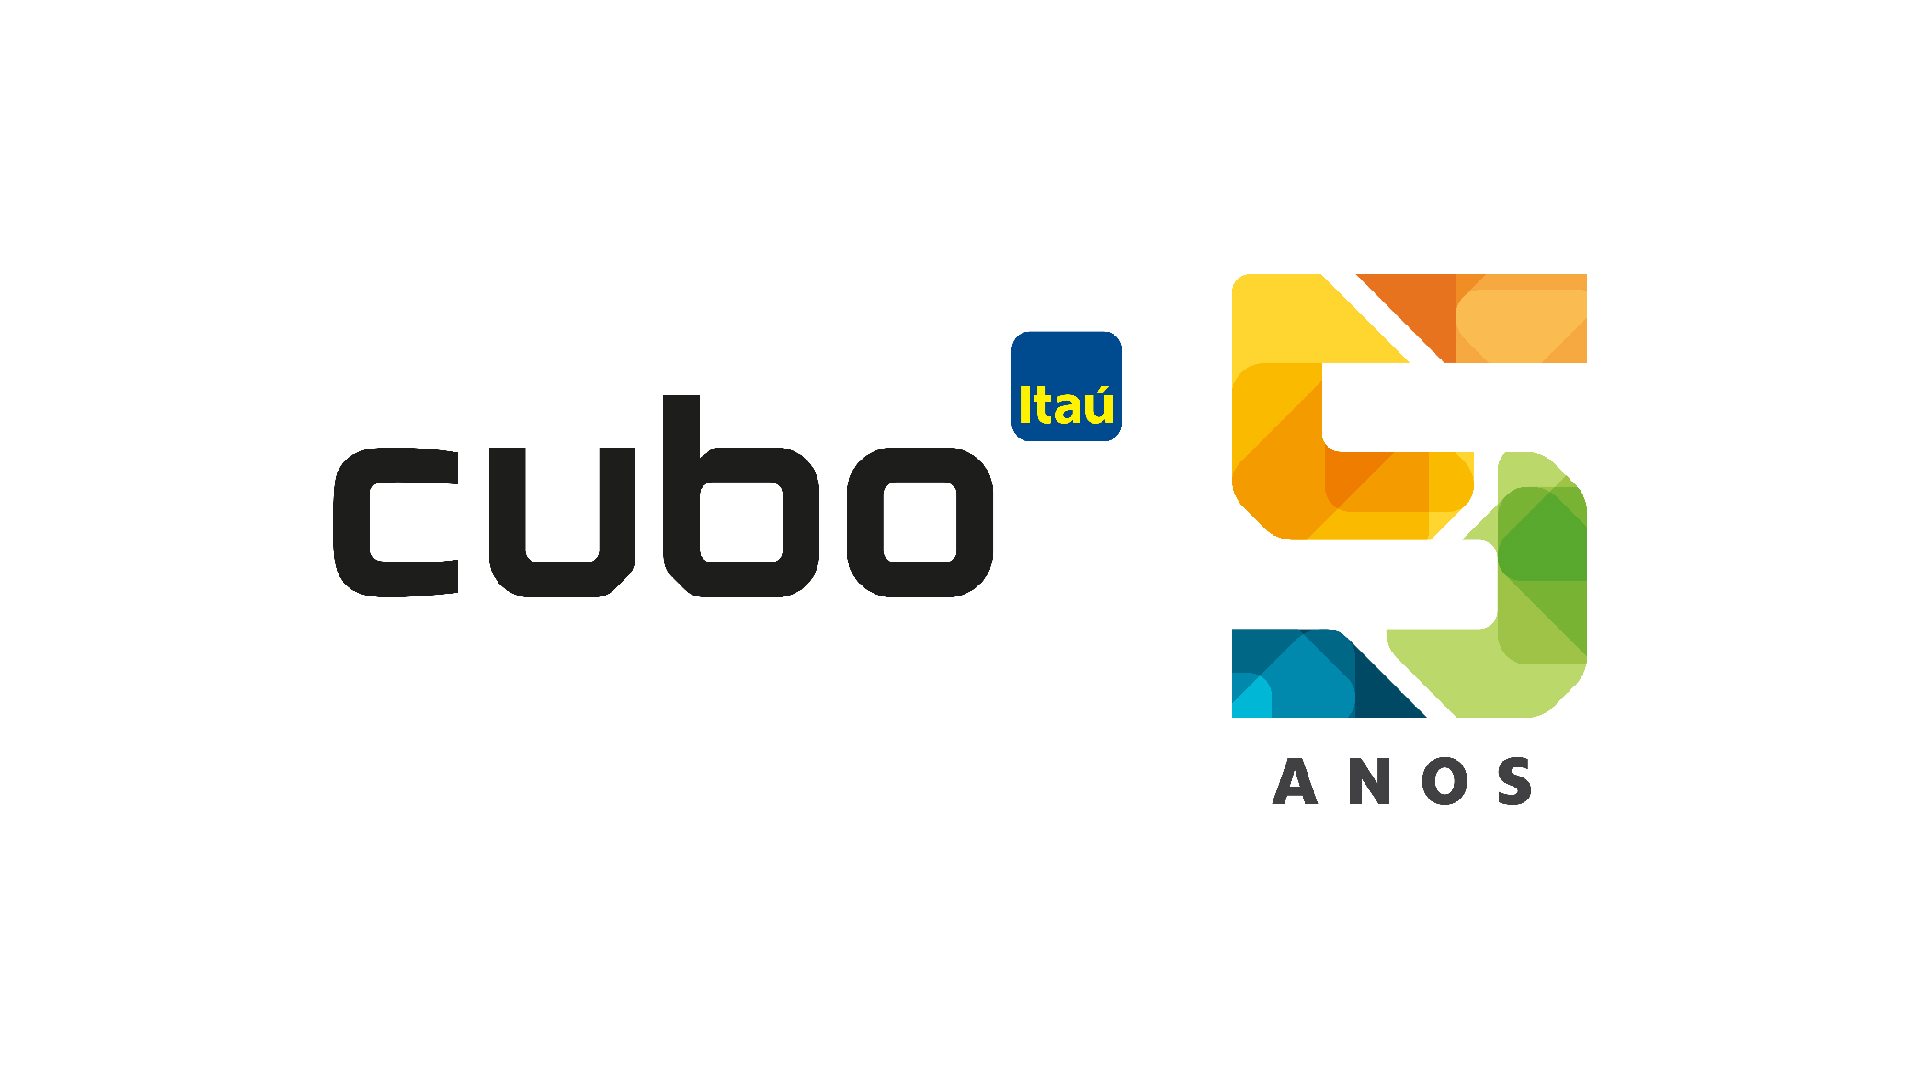 CUBO ITAÚ five years